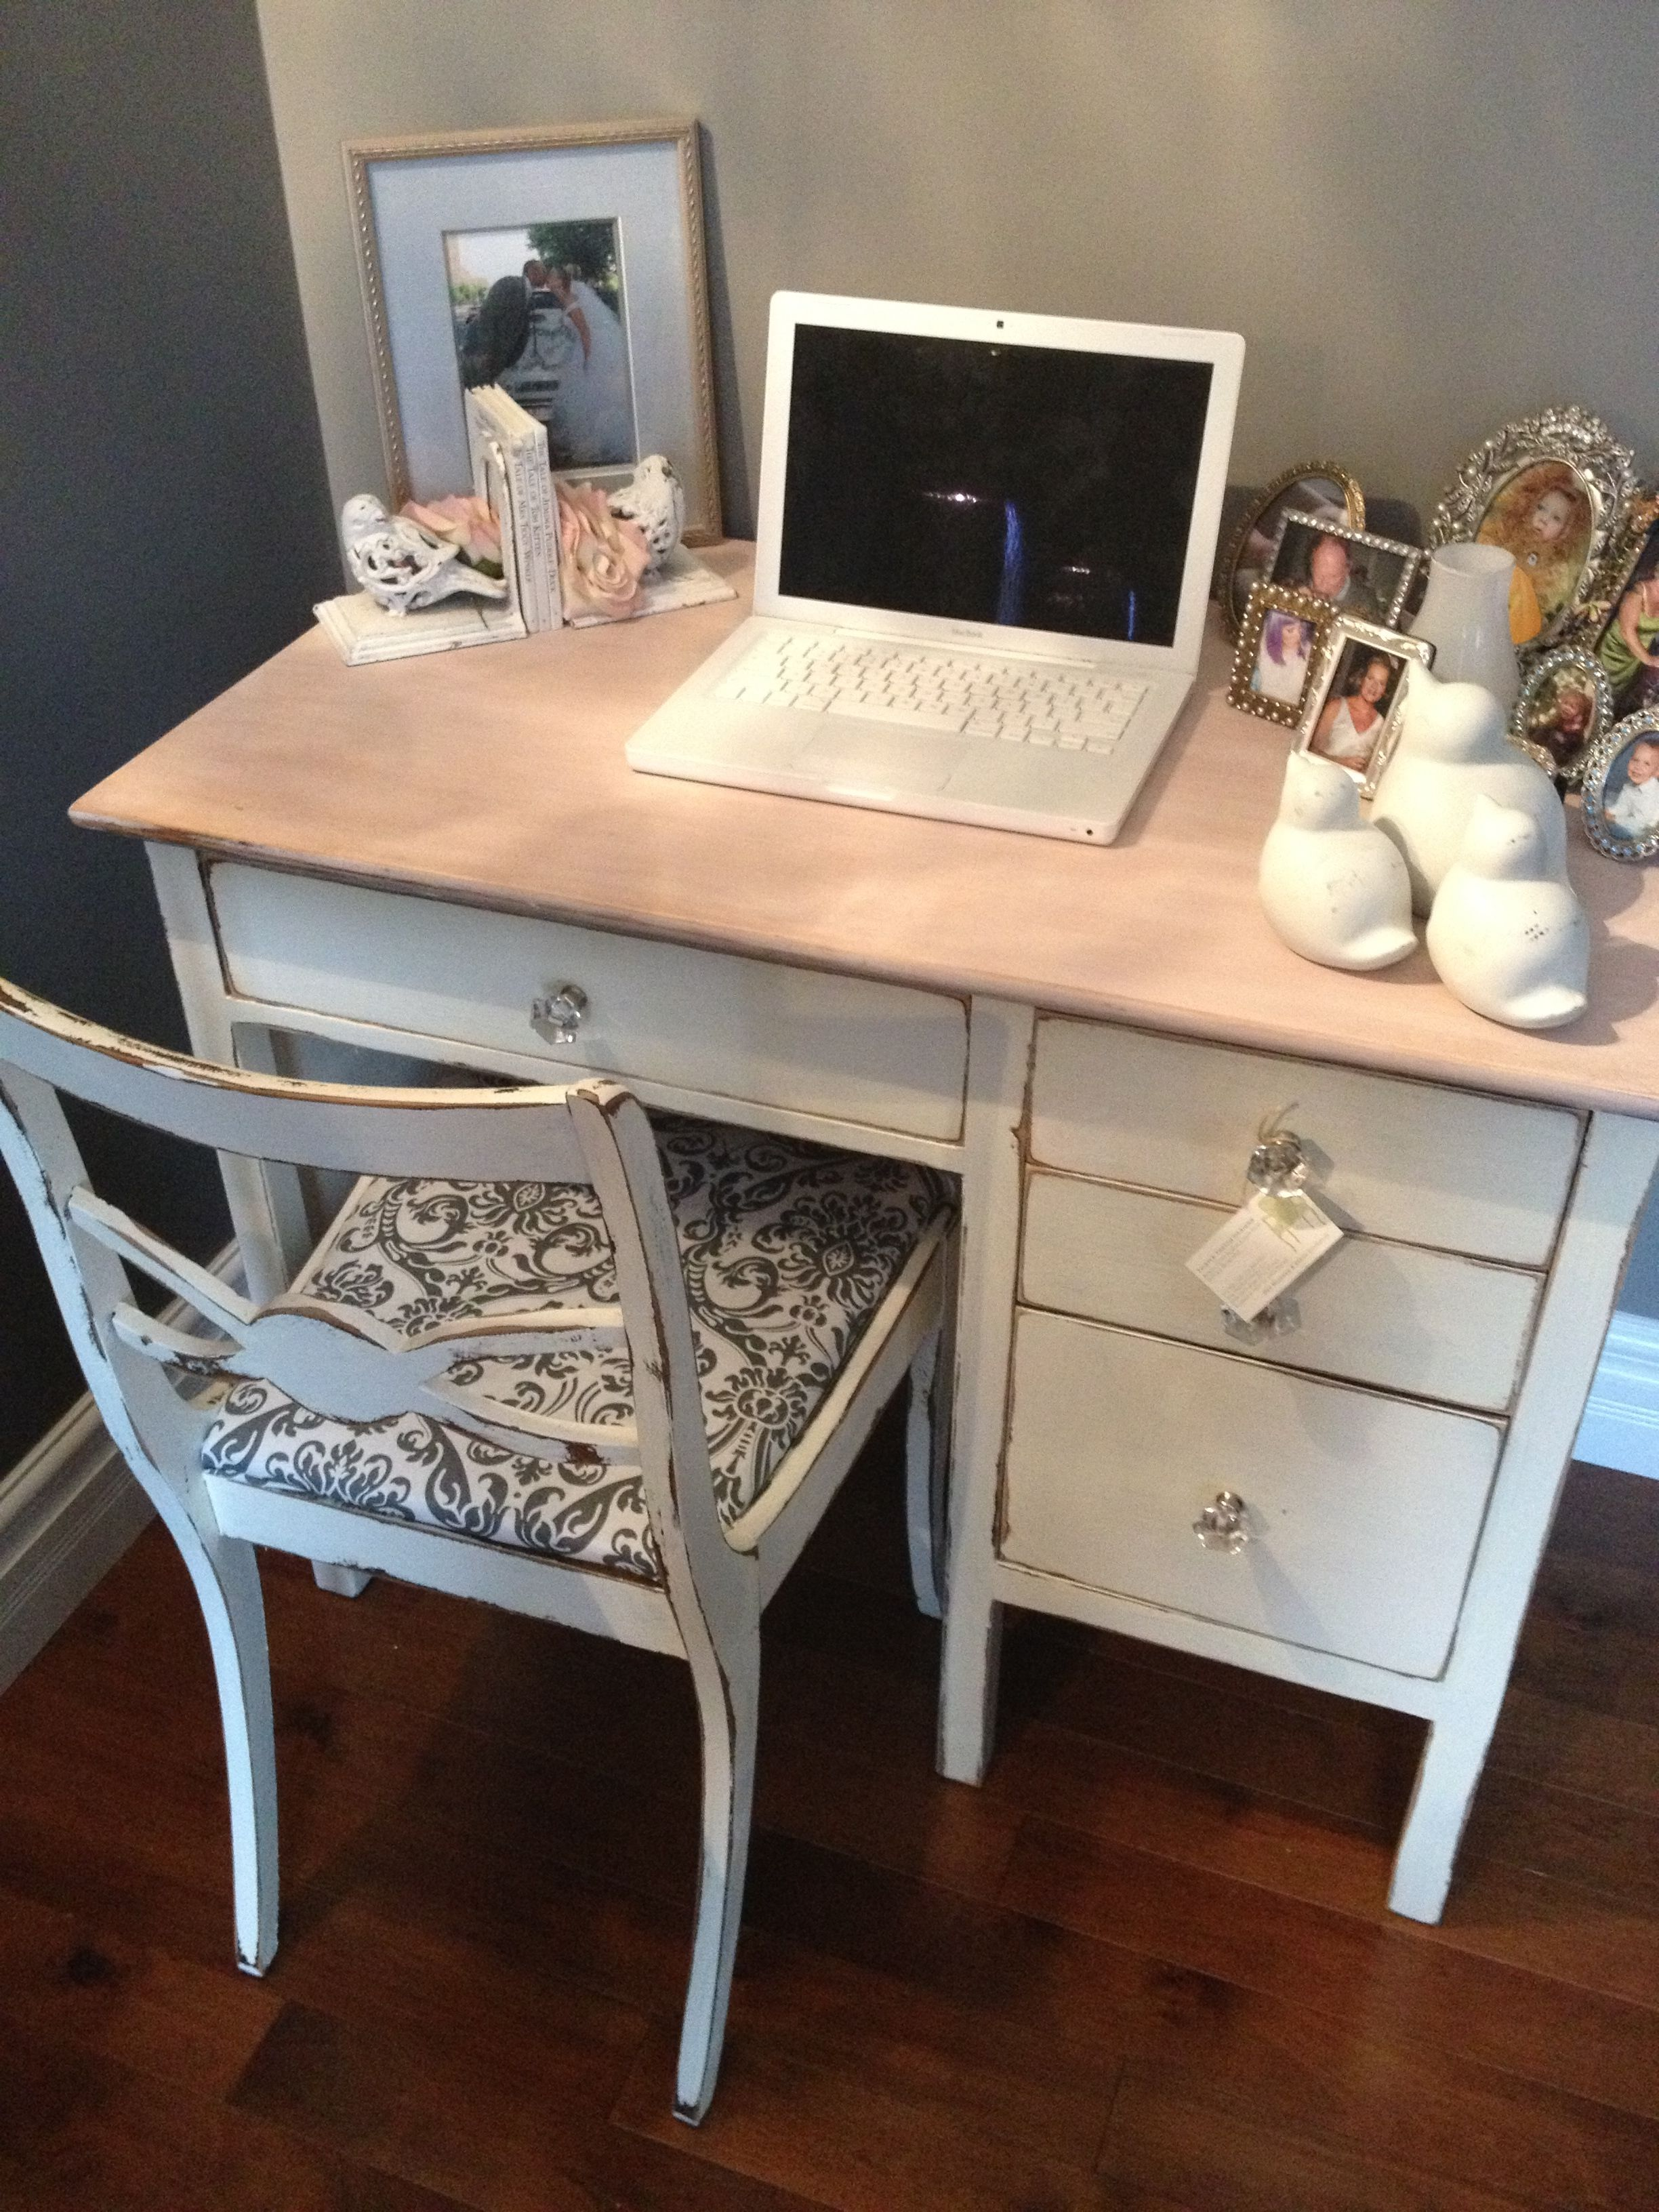 flat avopix roses free women coffee office premium bouquet magazines s of composition home top stock media shutterstock social photo royalty desk view lay table workspace fashion